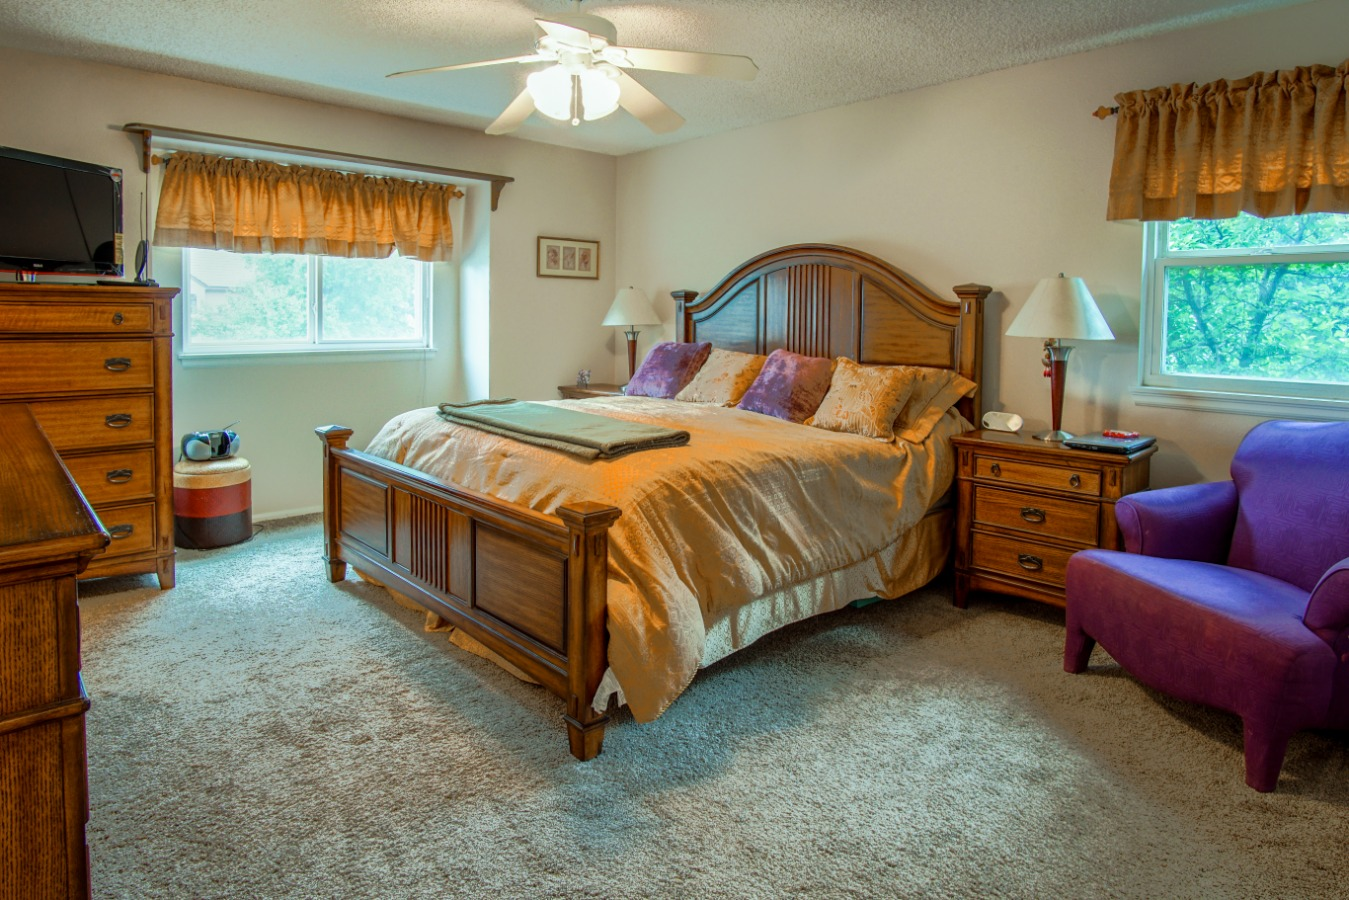 Master Suite with lots of light and a ceiling fan